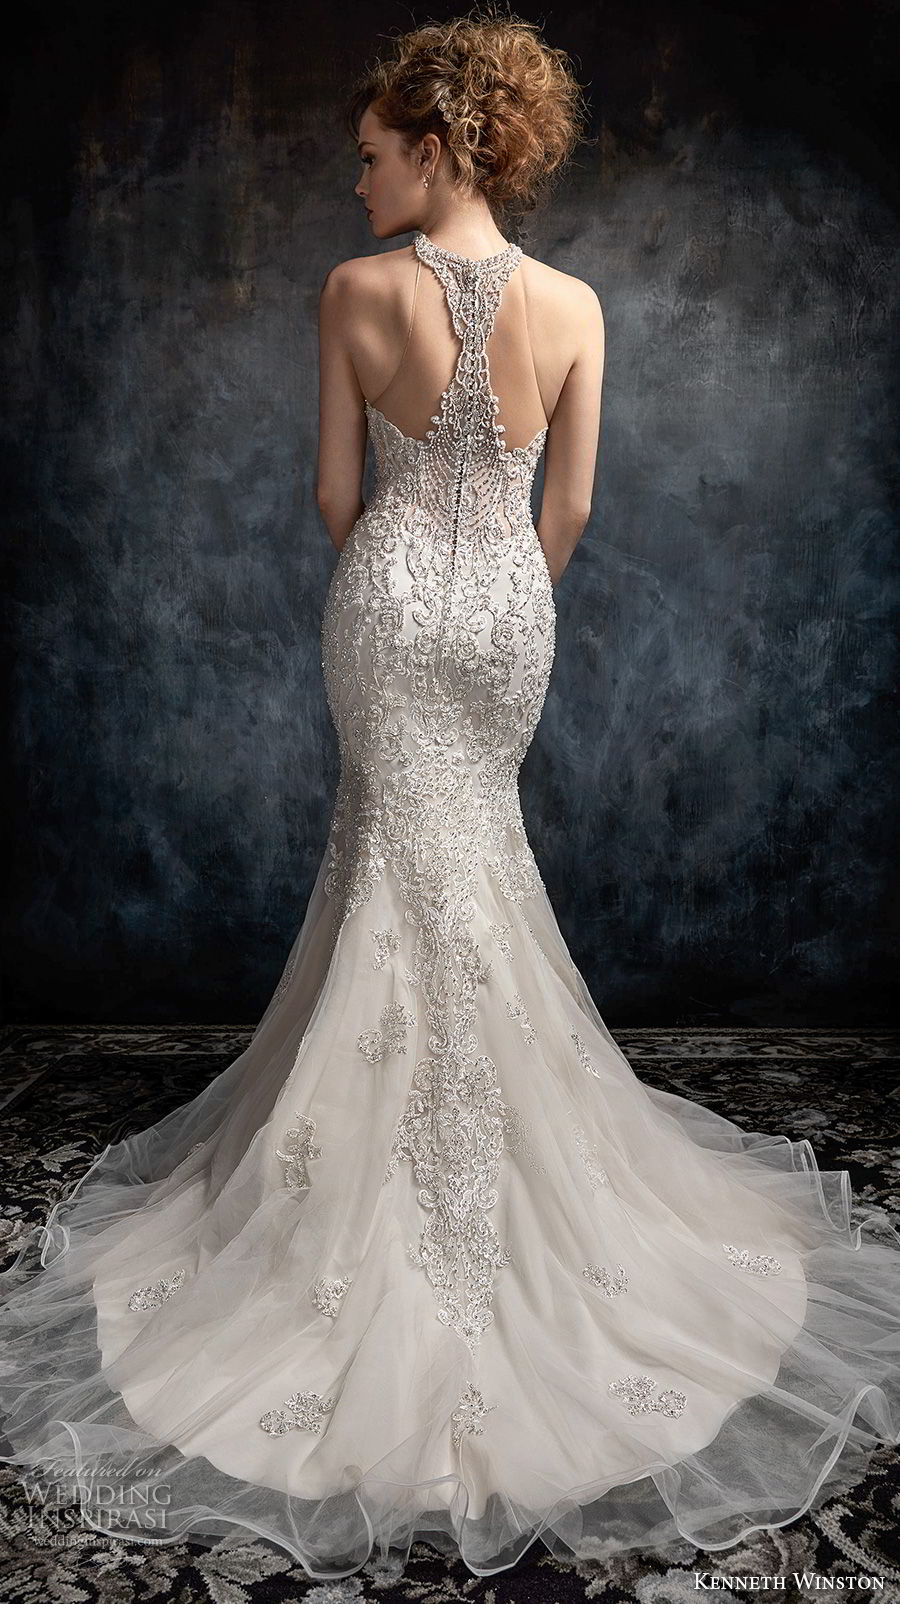 kenneth winston fall 2017 bridal strapless rasor sweetheart neckline heavily embellished beaded bodice elegant mermaid wedding dress rasor back chapel train (44) bv